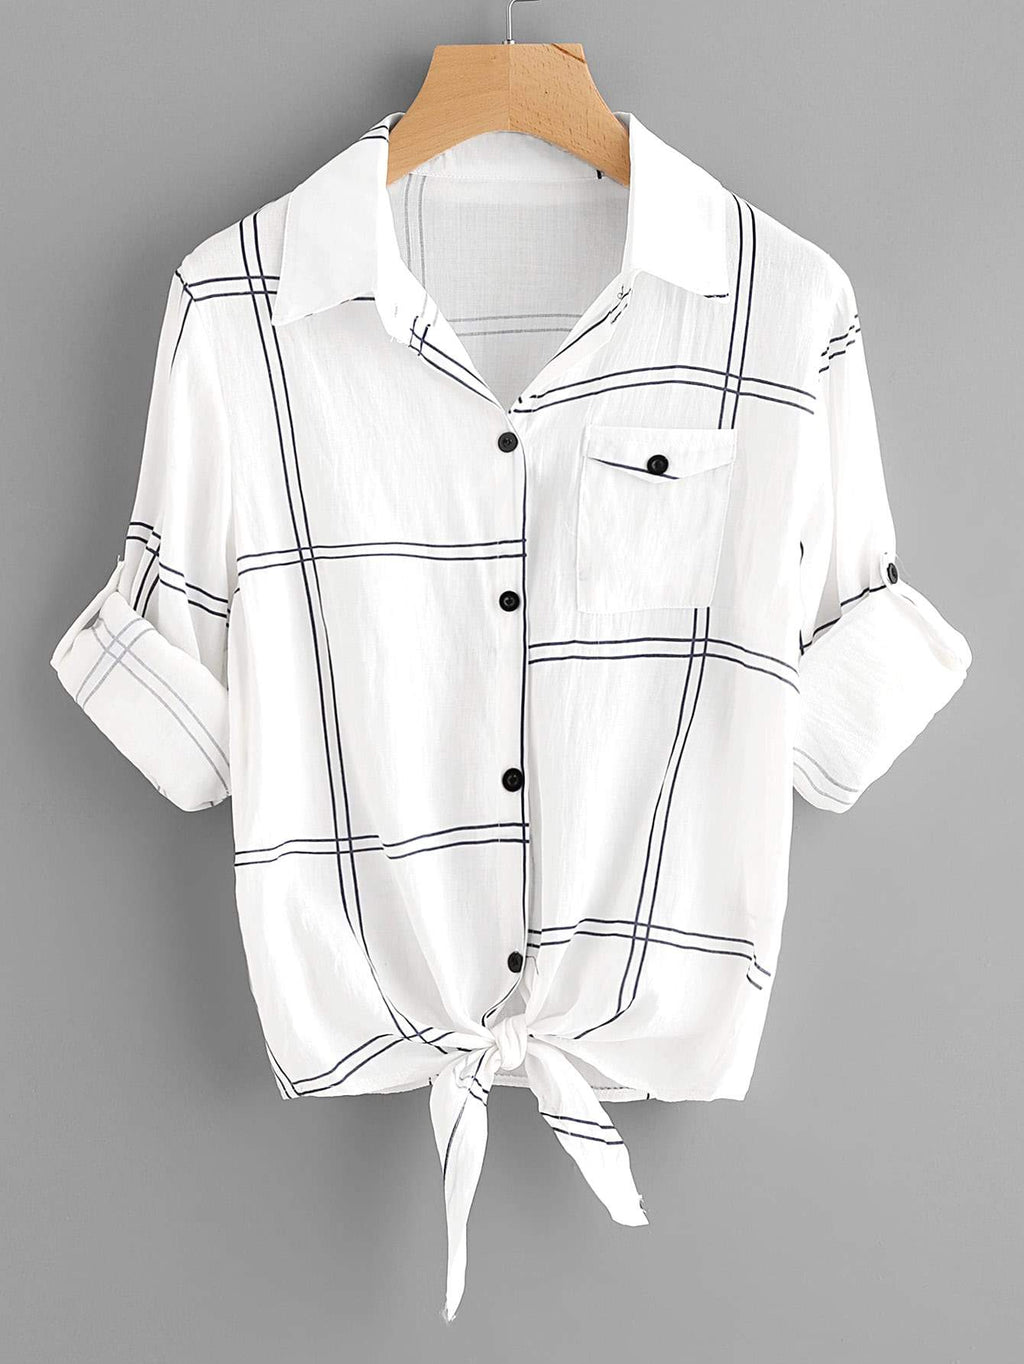 Grid Print Self-Tie Short Sleeve Shirt - INS | Online Fashion Free Shipping Clothing, Dresses, Tops, Shoes